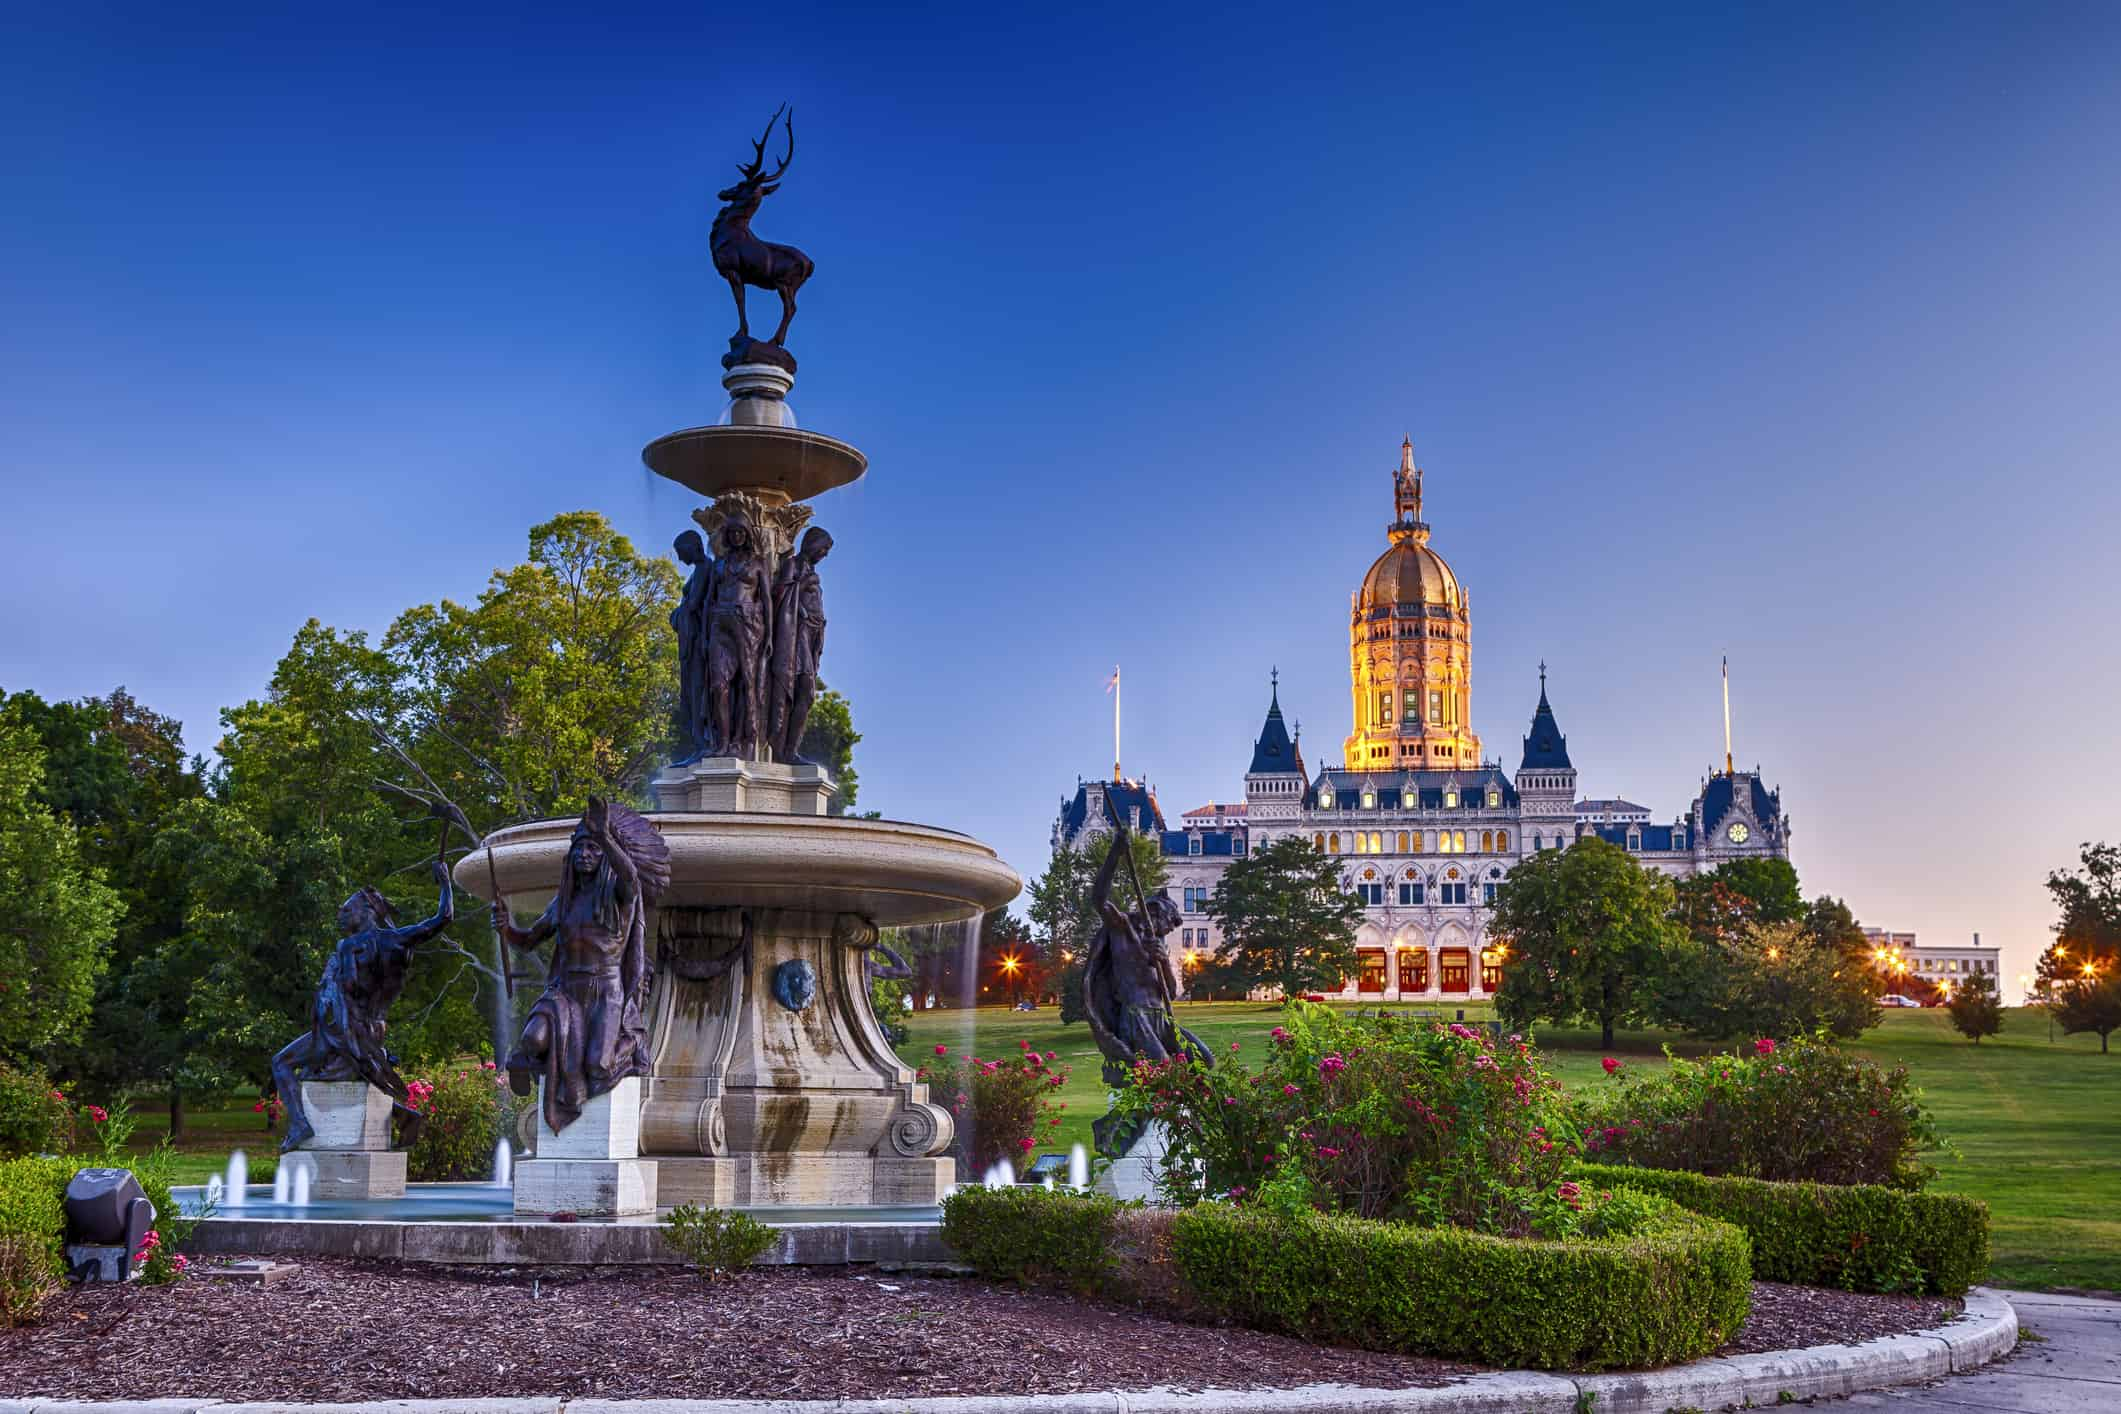 The Connecticut State Capitol building with the Corning Fountain in the foreground. The fountain was dedicated in 1899.